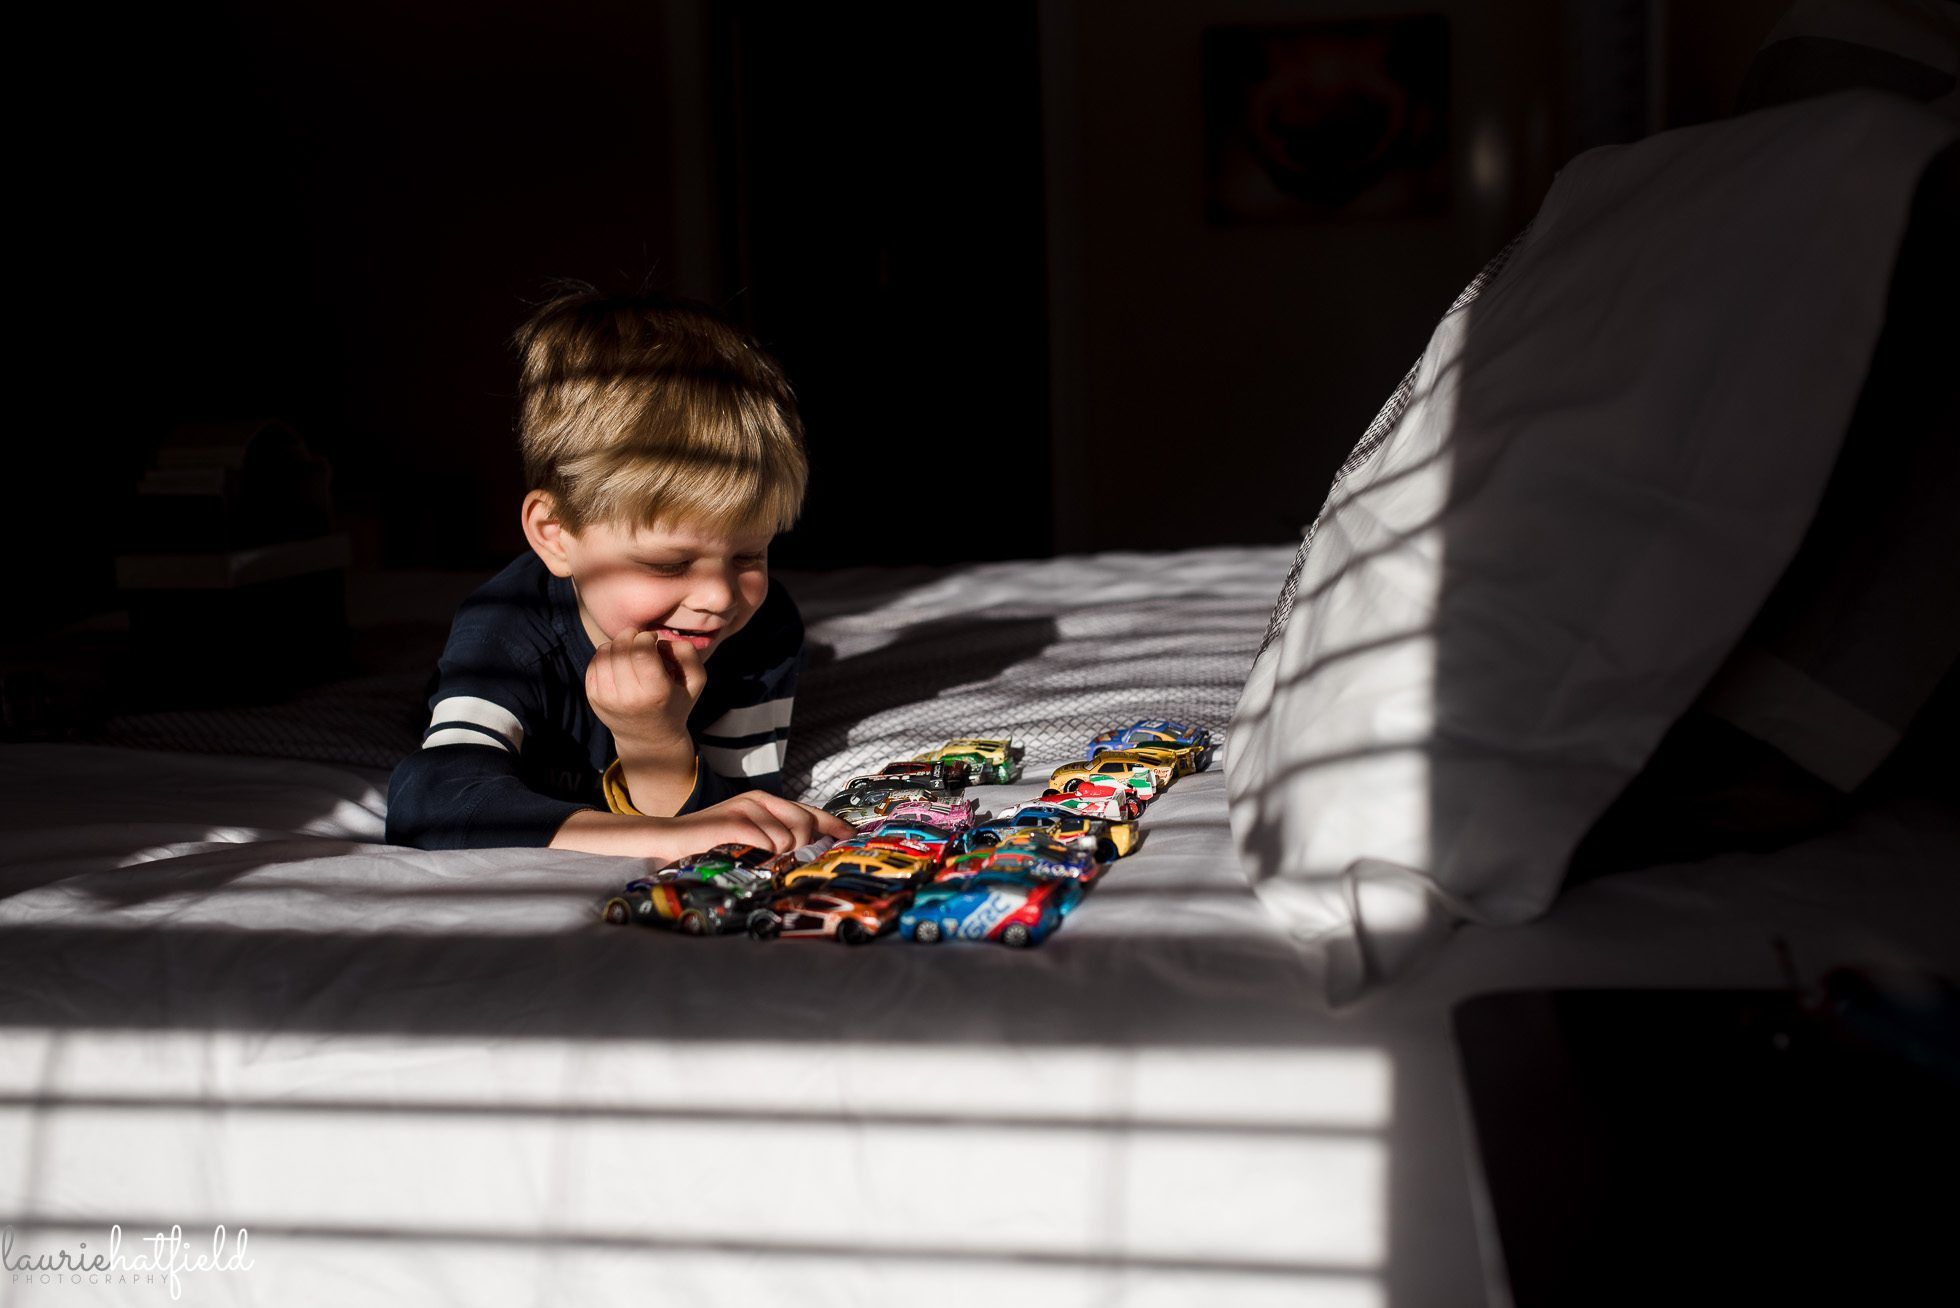 4-year-old playing with race cars on bed